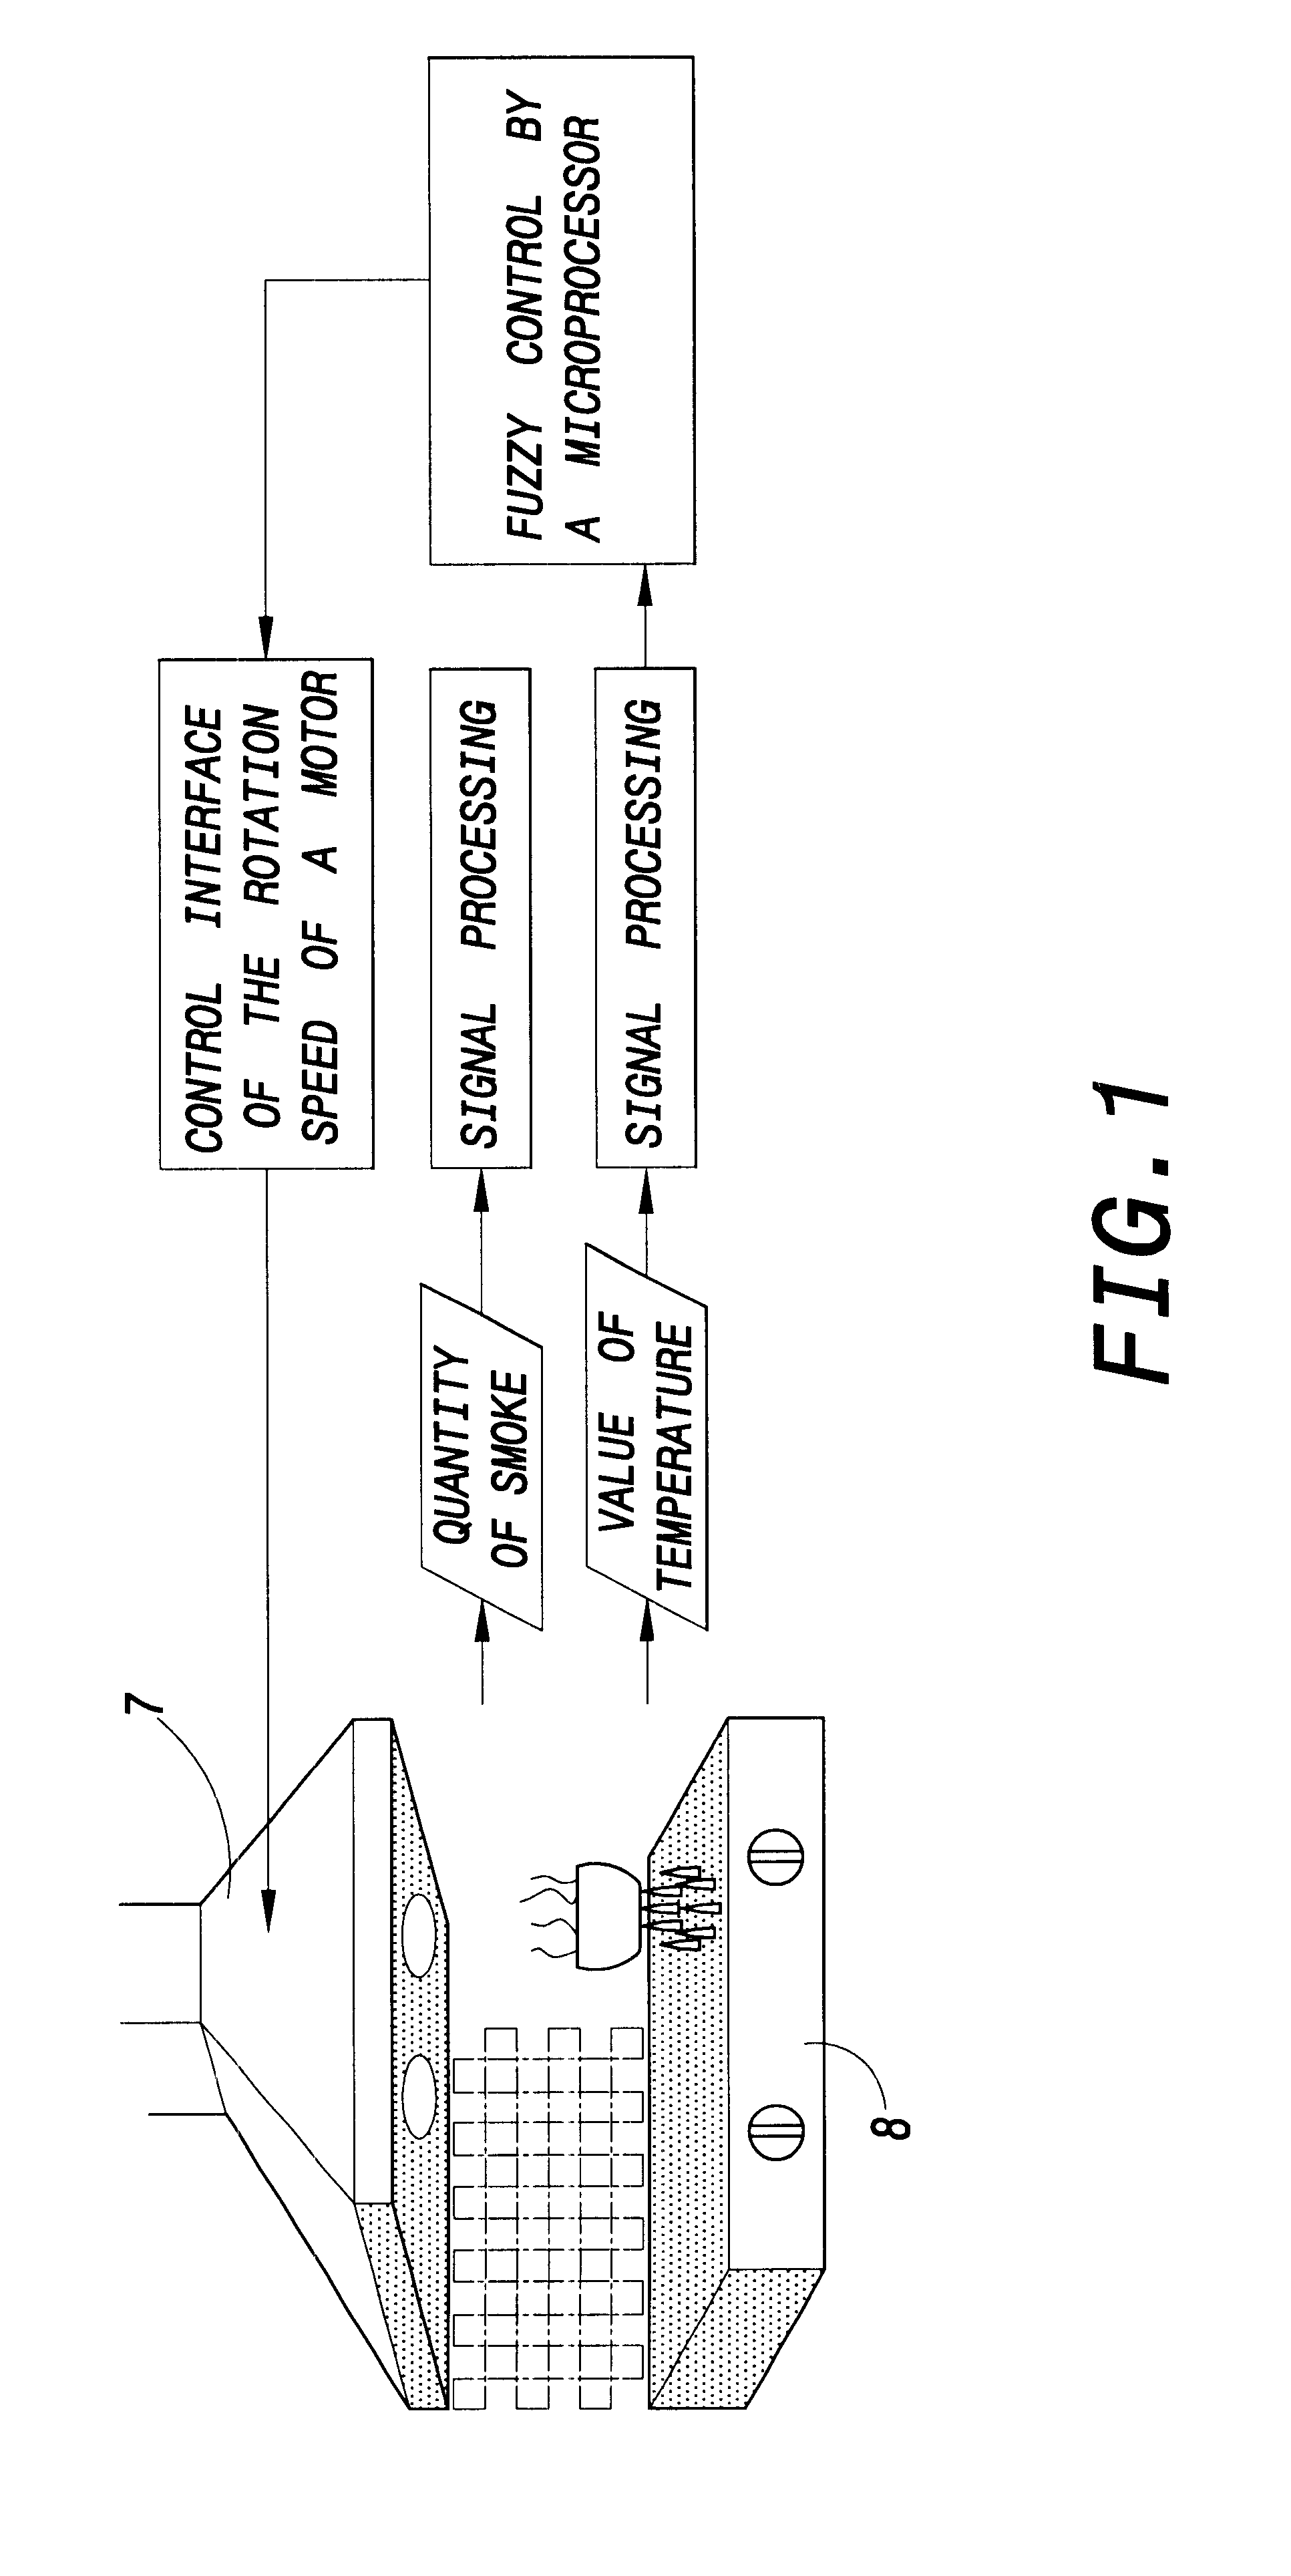 Patent Us6446624 Smart Circuit Device Of Smoke Exhauster For Induction Cooker Signalprocessing Diagram Drawing